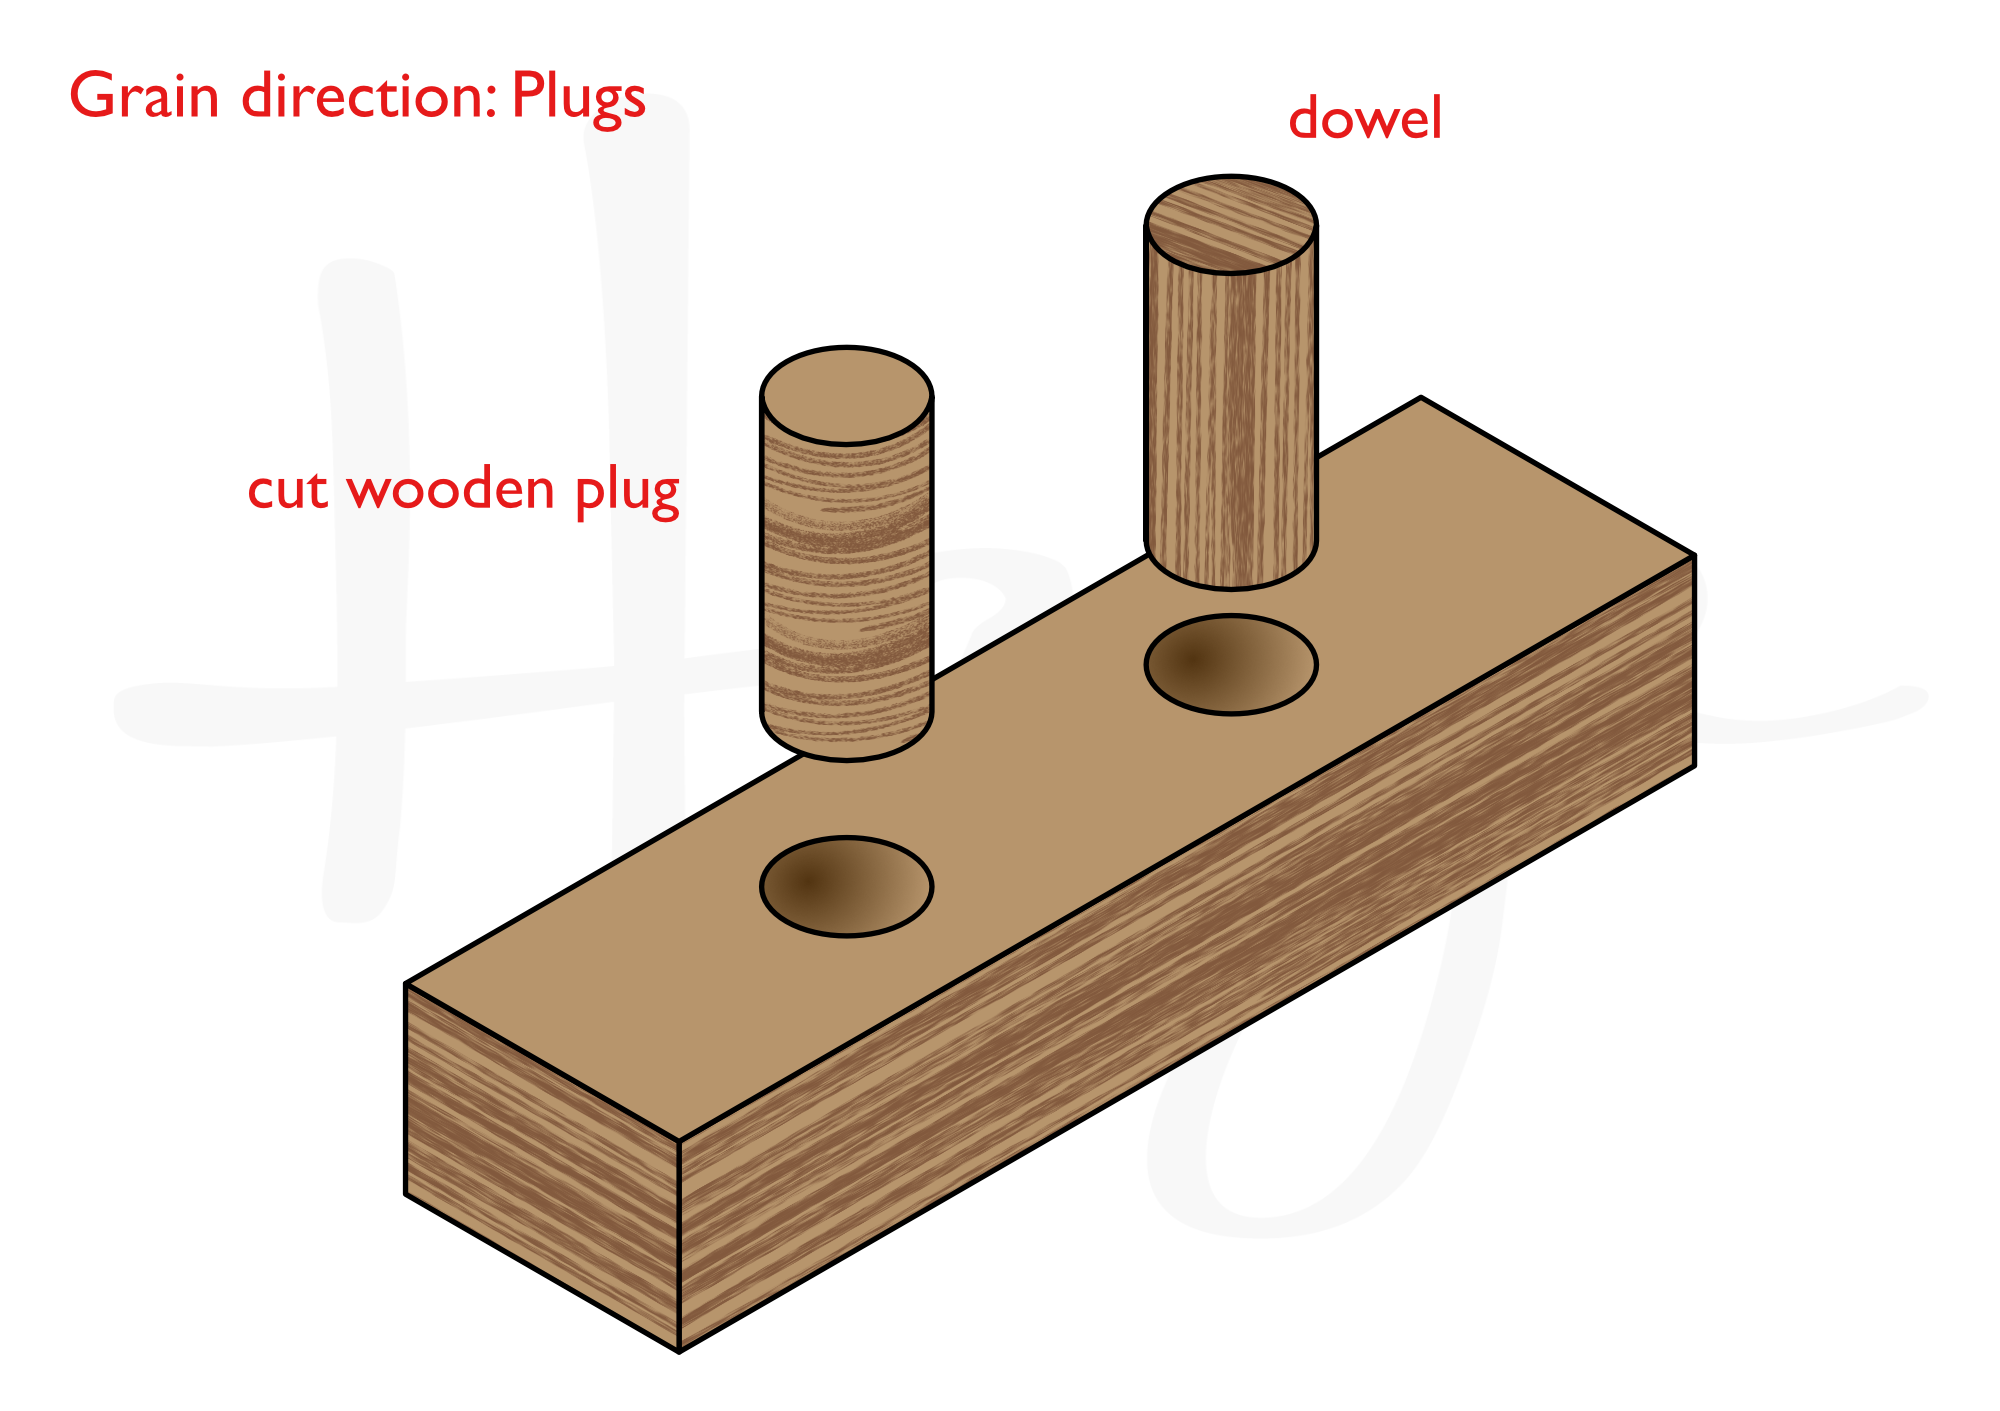 Dowels are an easy way to plug a hole but not always the preferred